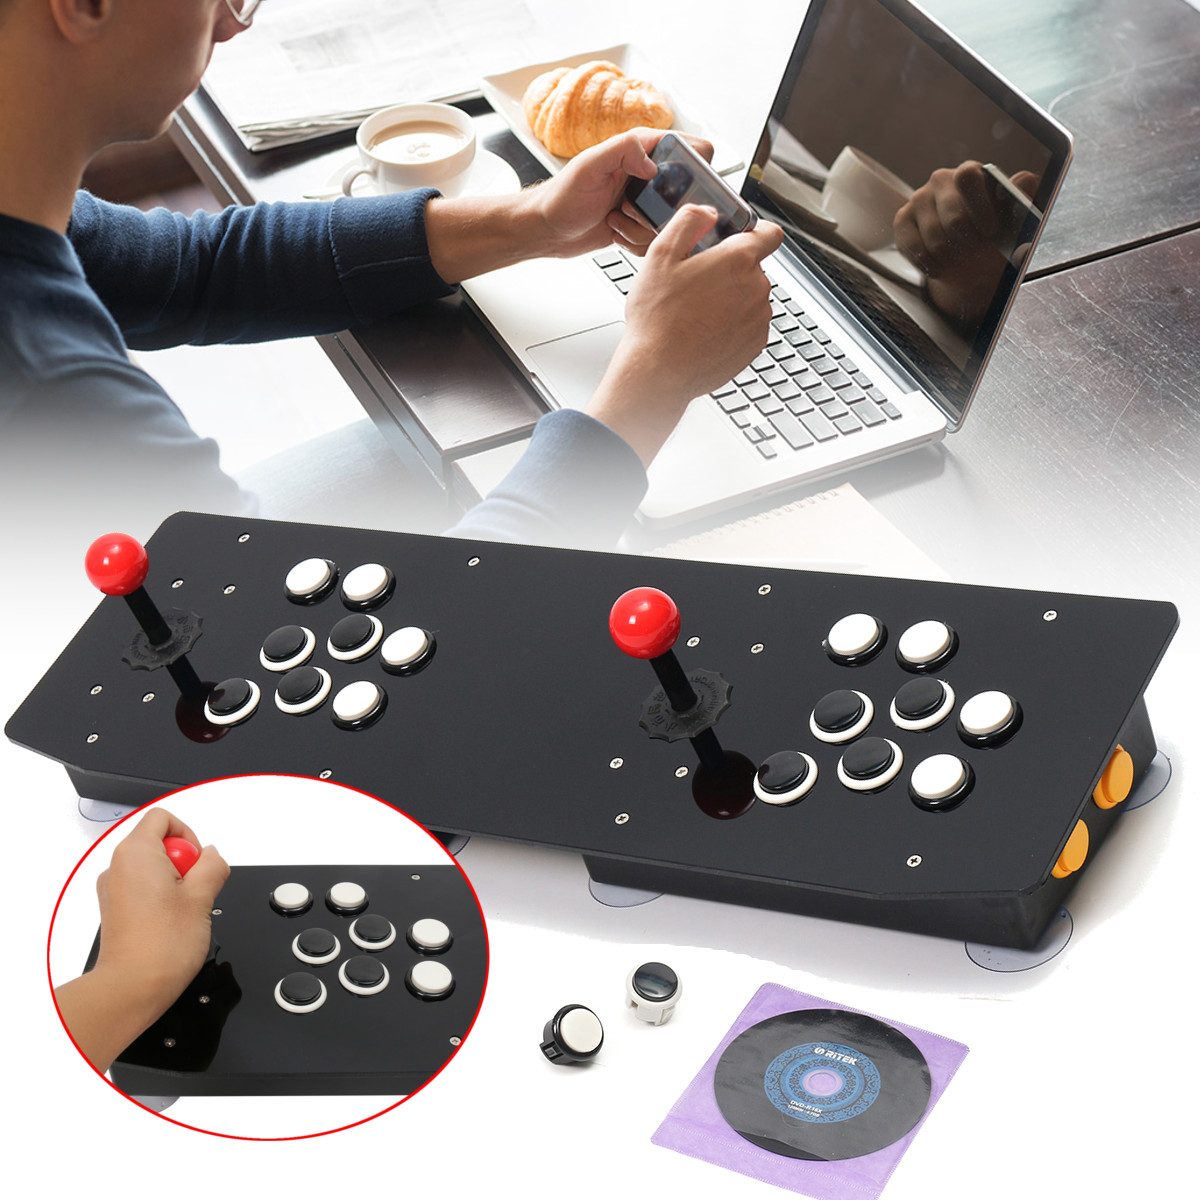 Double Arcade Stick Video Game Joystick Controller Console PC USB 2 Players Computer Video Game Machine Game Playing Accessories